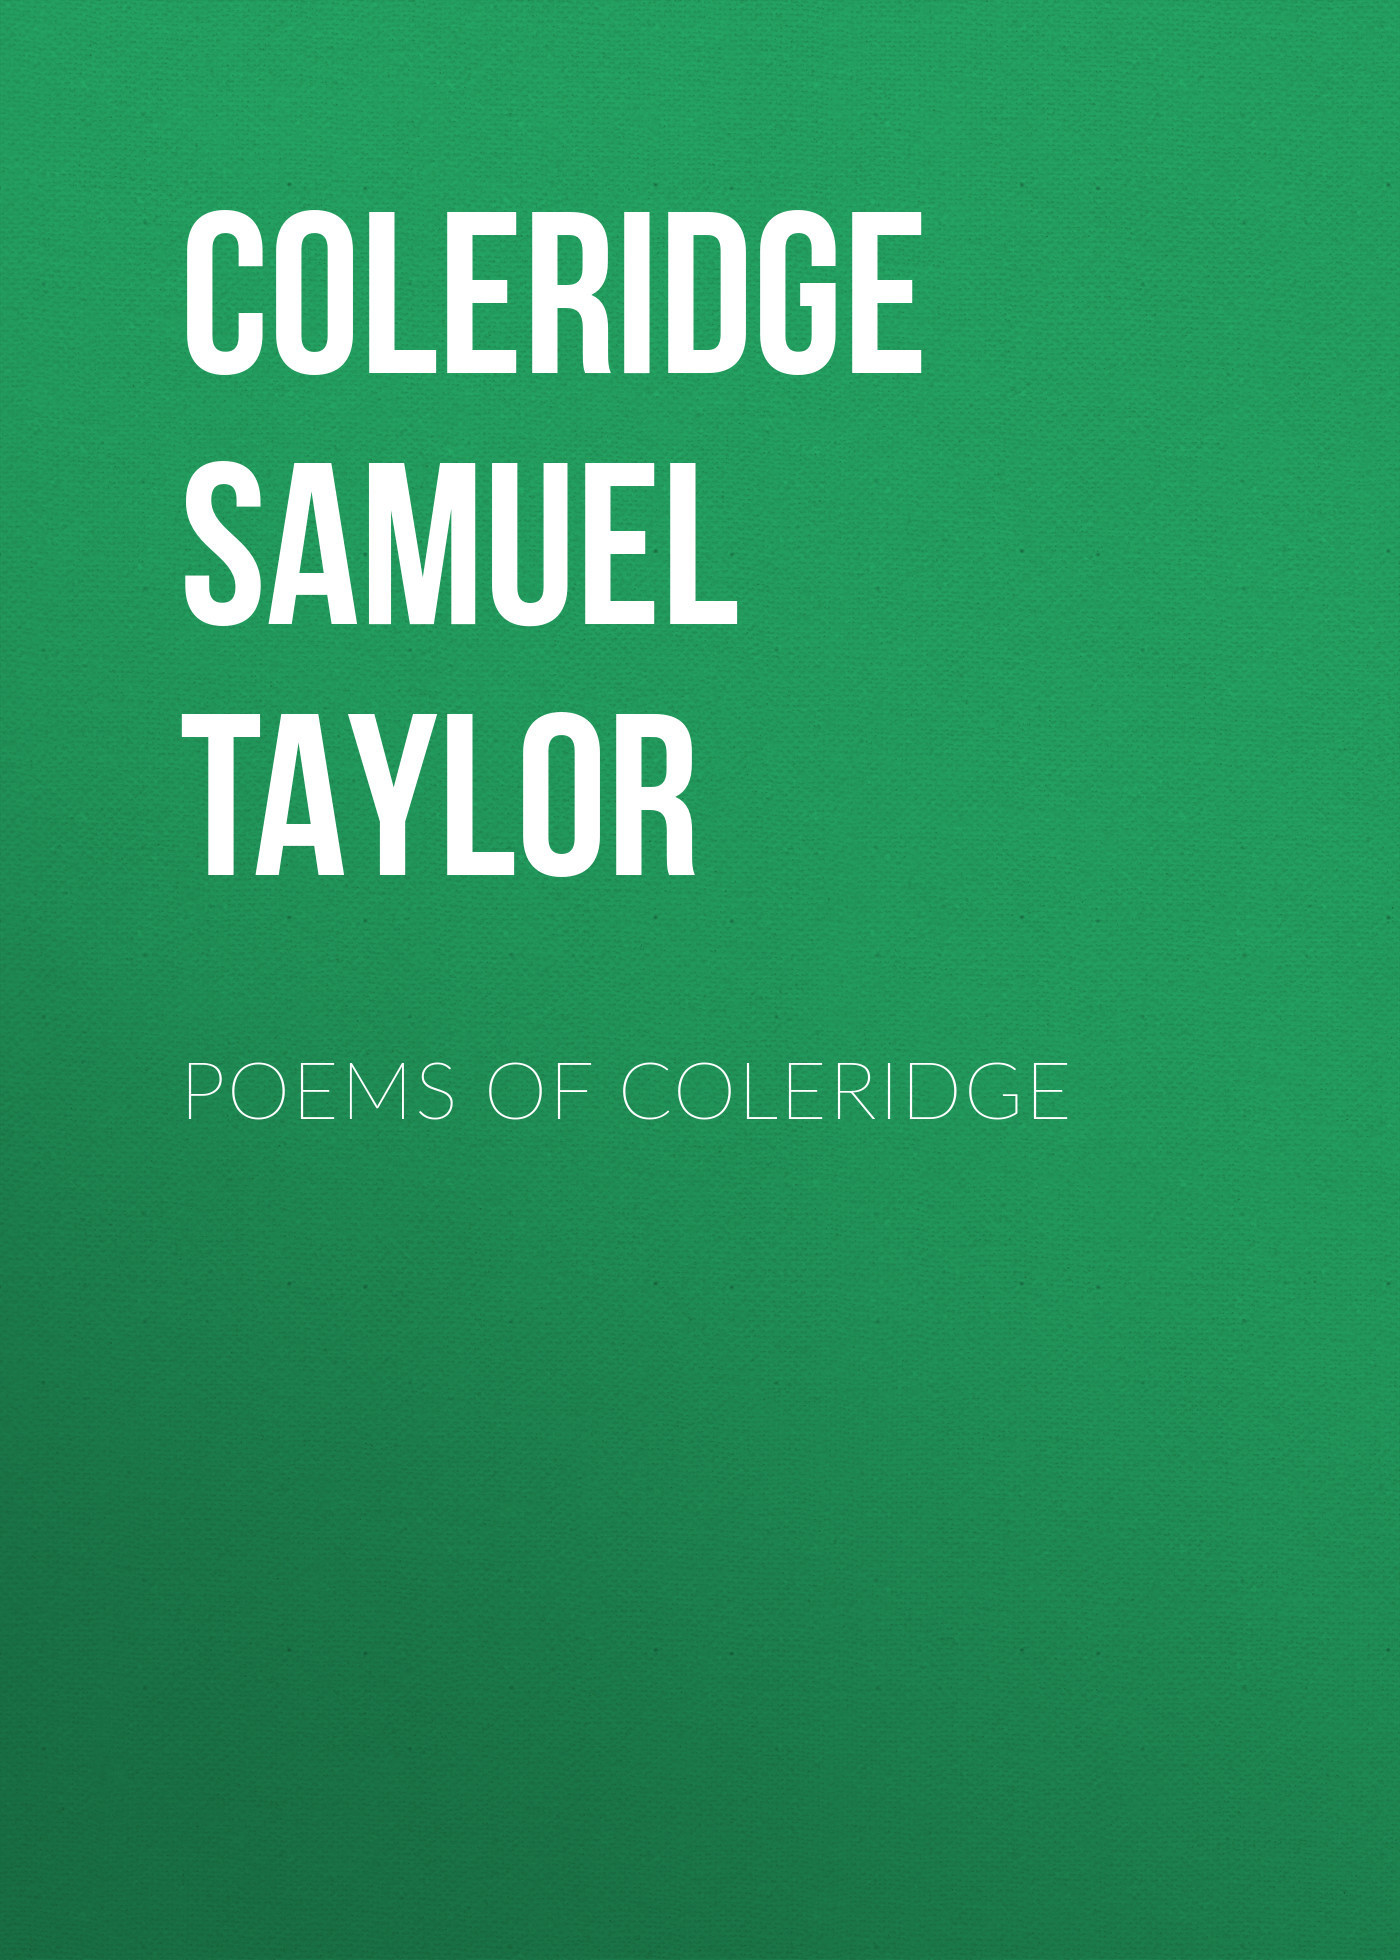 Coleridge Samuel Taylor Poems of Coleridge coleridge christabel rose maud florence nellie or don t care